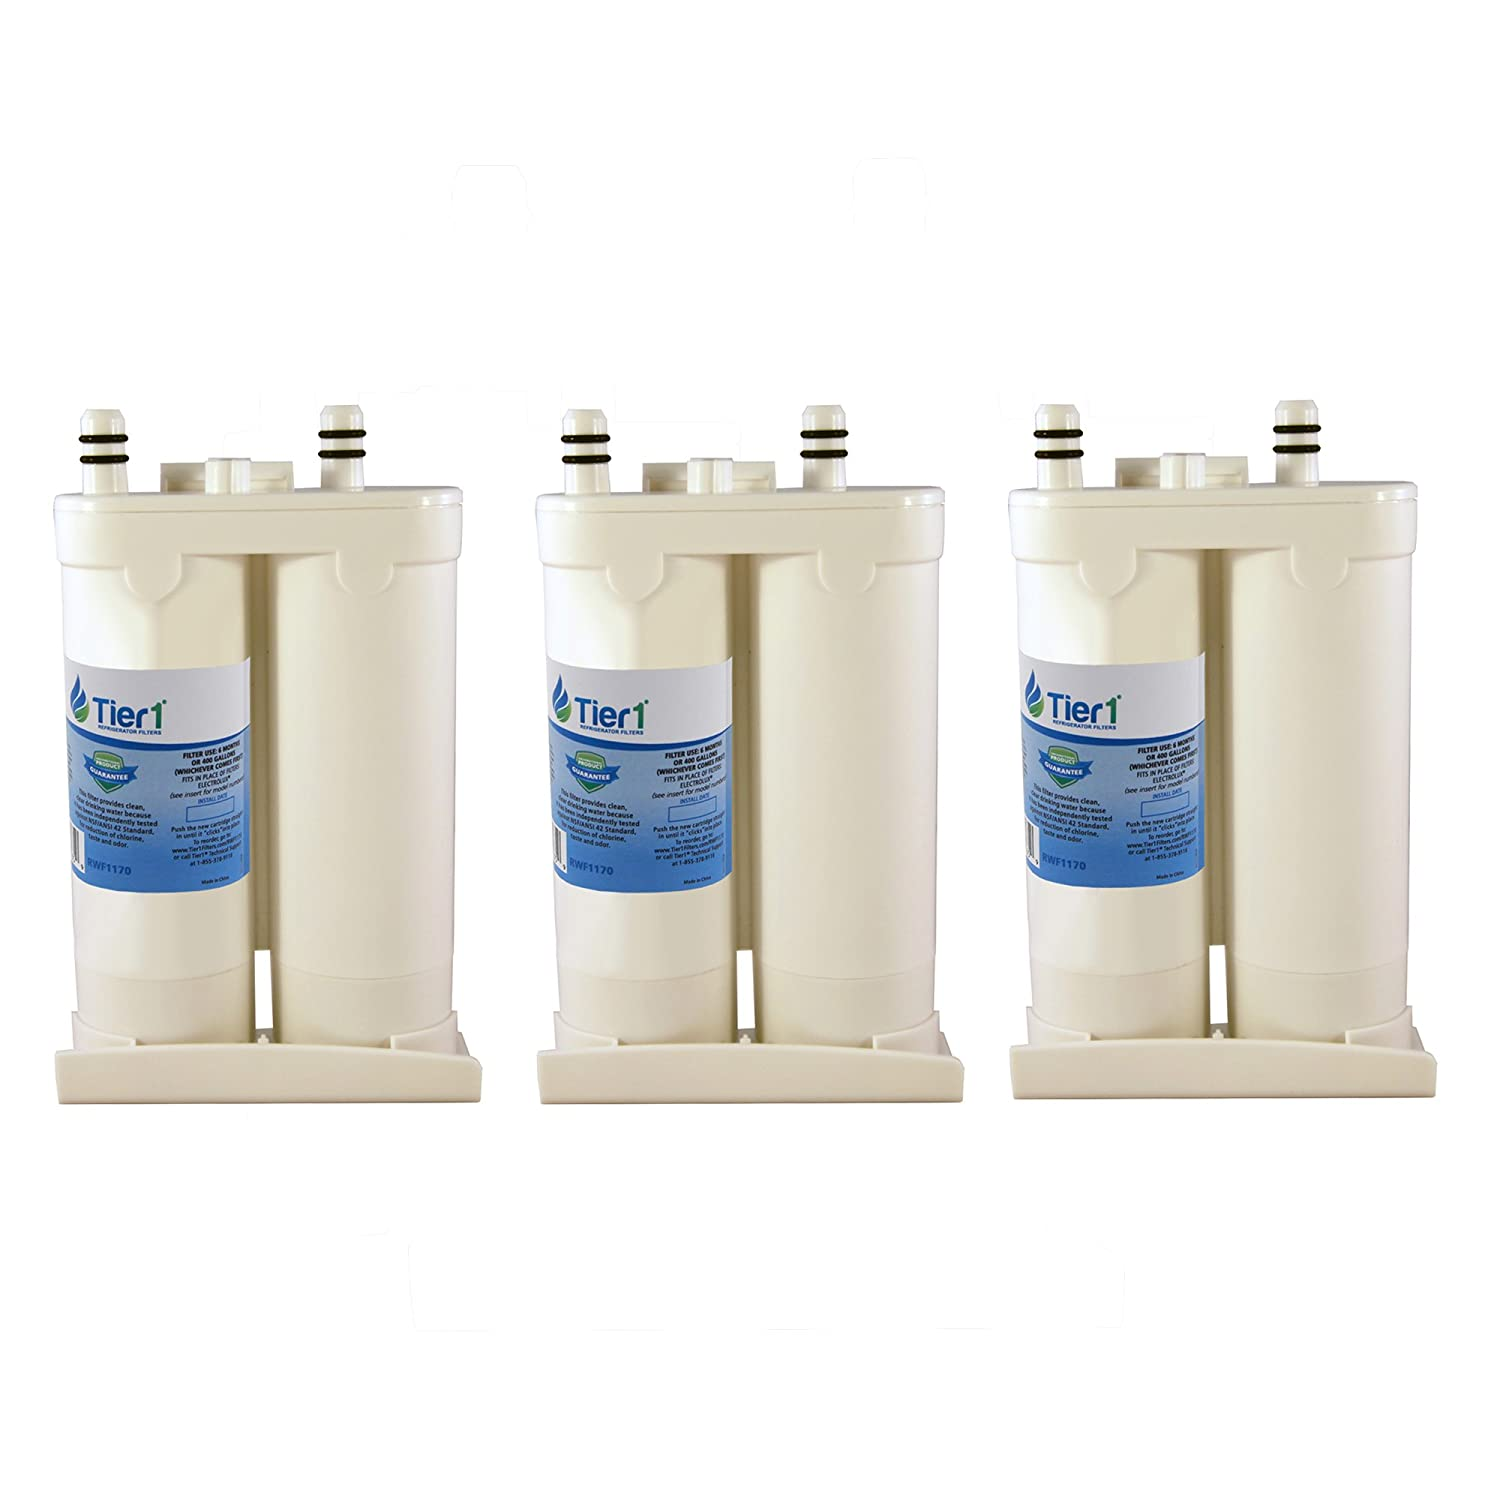 3 Pack Tier1 EWF01 Electrolux PureAdvantage, NGFC 2000, EWF2CBPA, FC-300 Replacement Refrigerator Water Filter